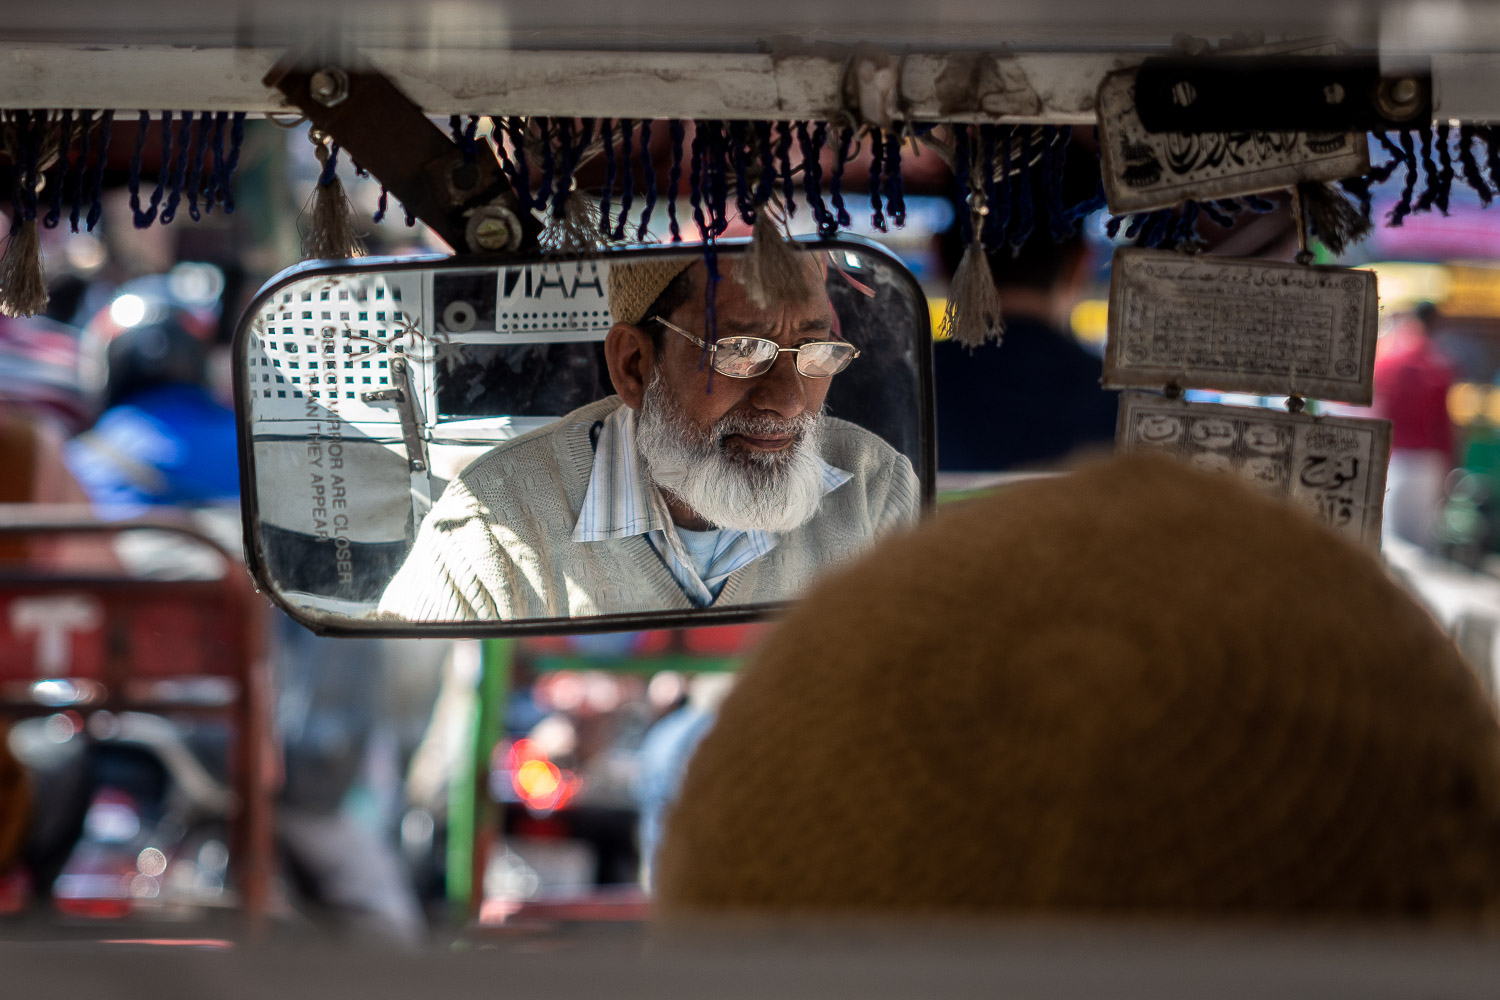 Tuk-tuk, Old Delhi, India.